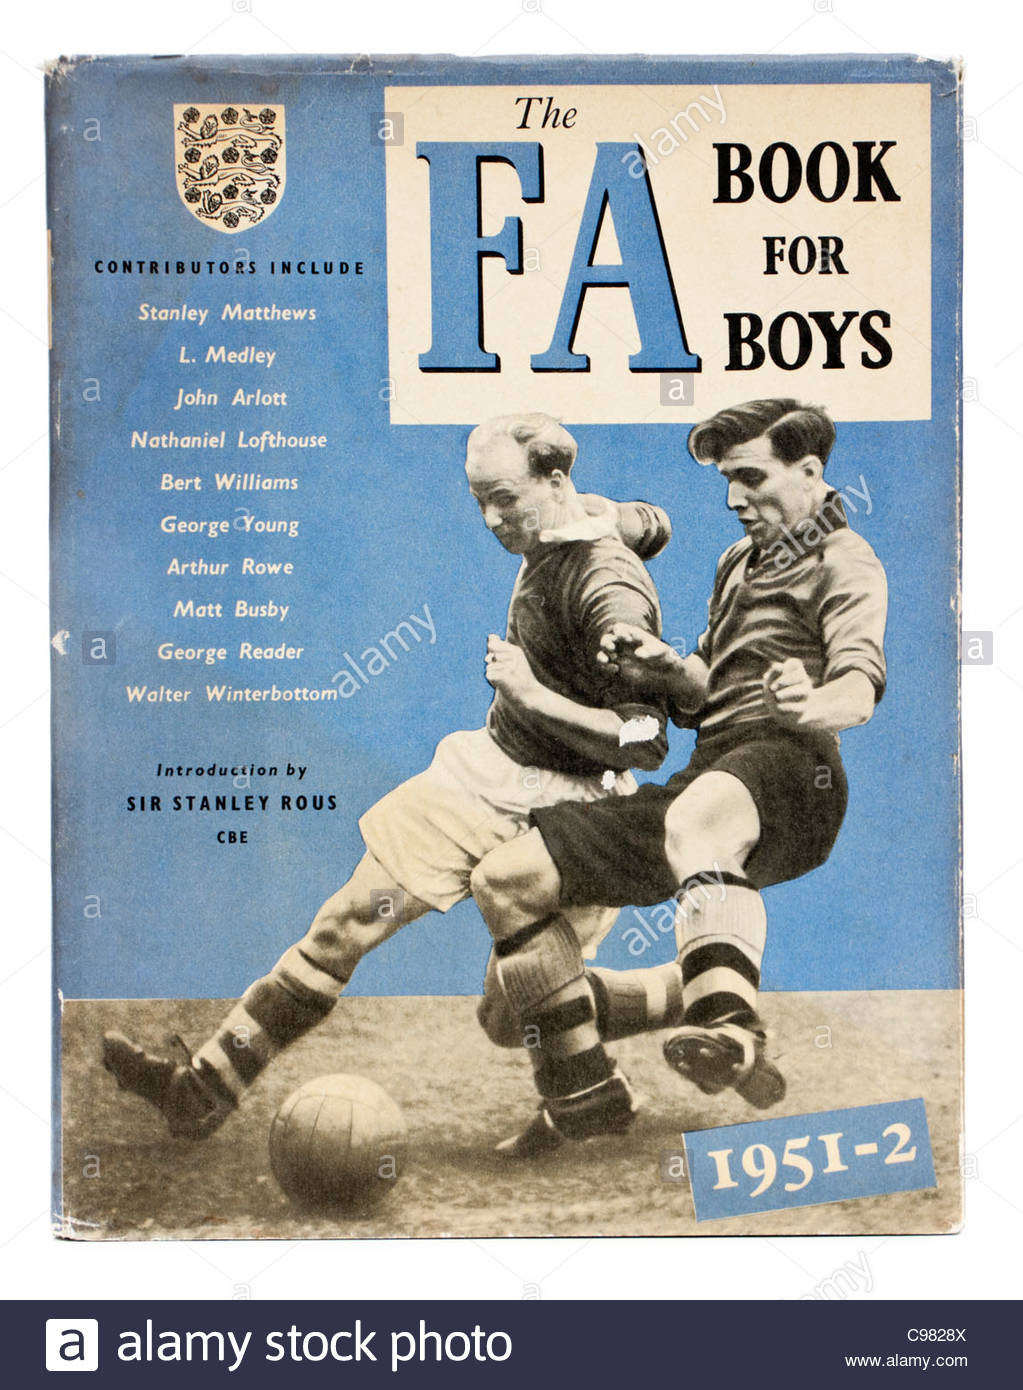 'The FA Book for Boys' from 1951-1952 - Stock Image